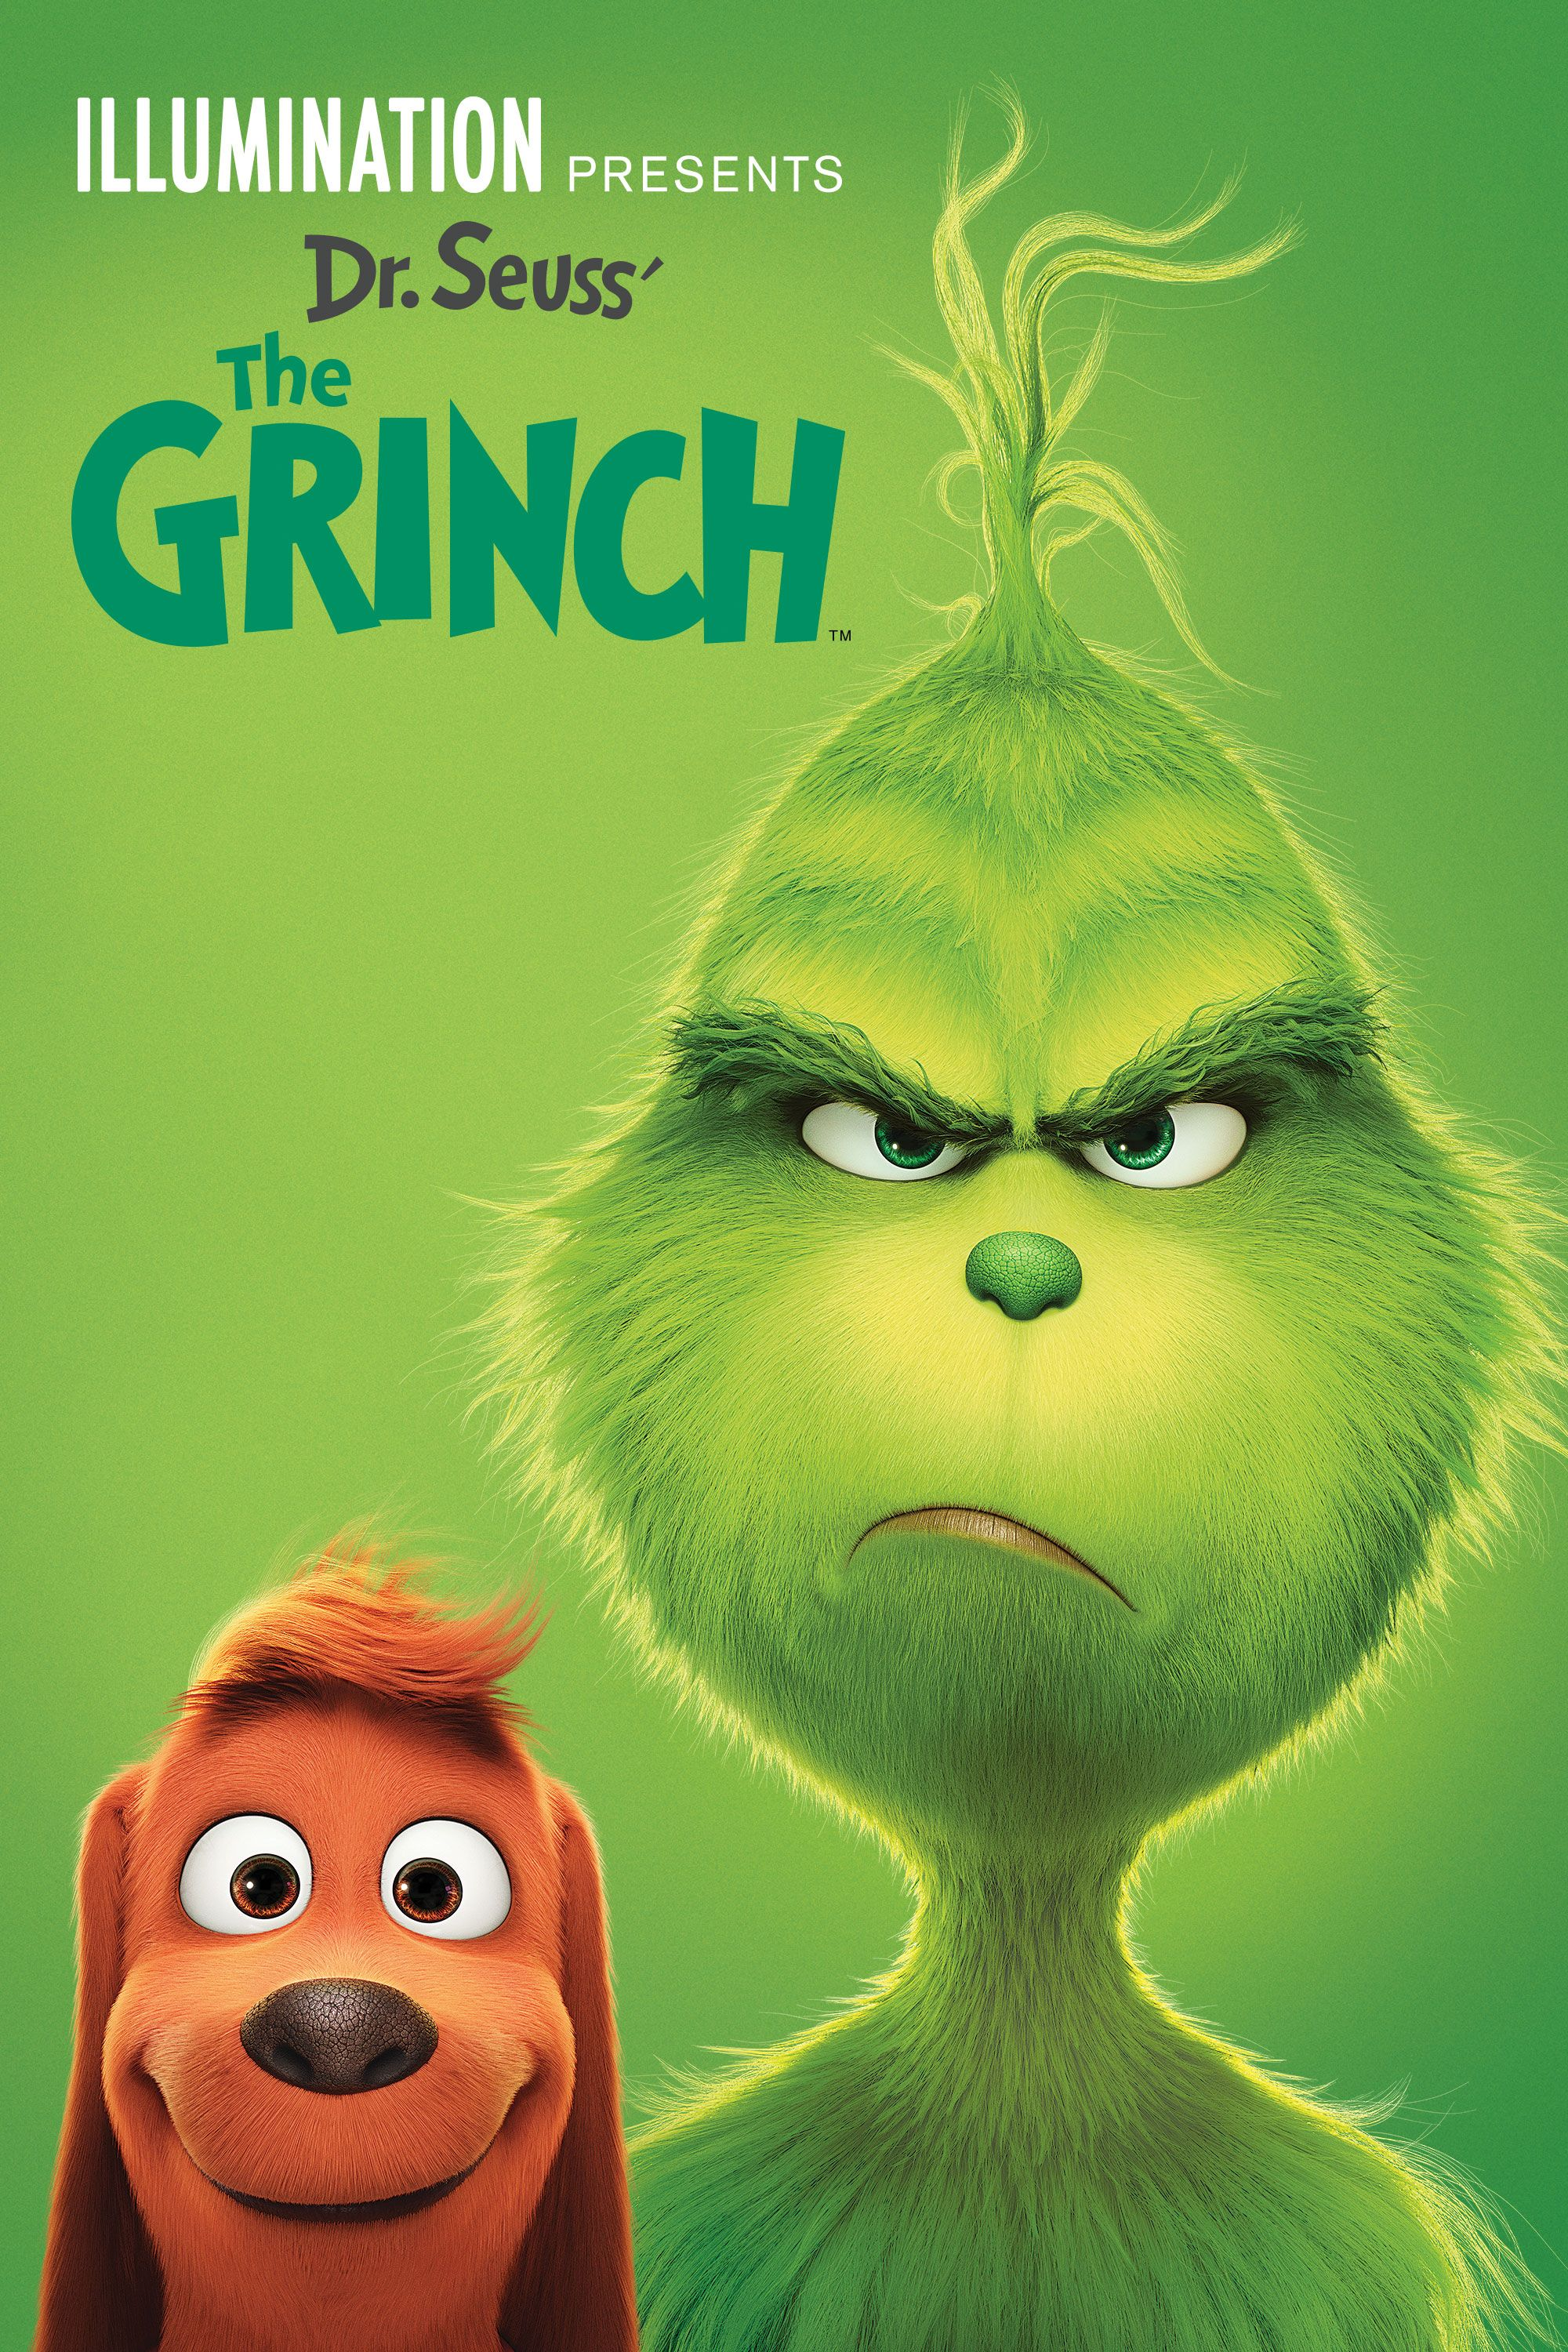 Movie poster image for DR. SEUSS' THE GRINCH